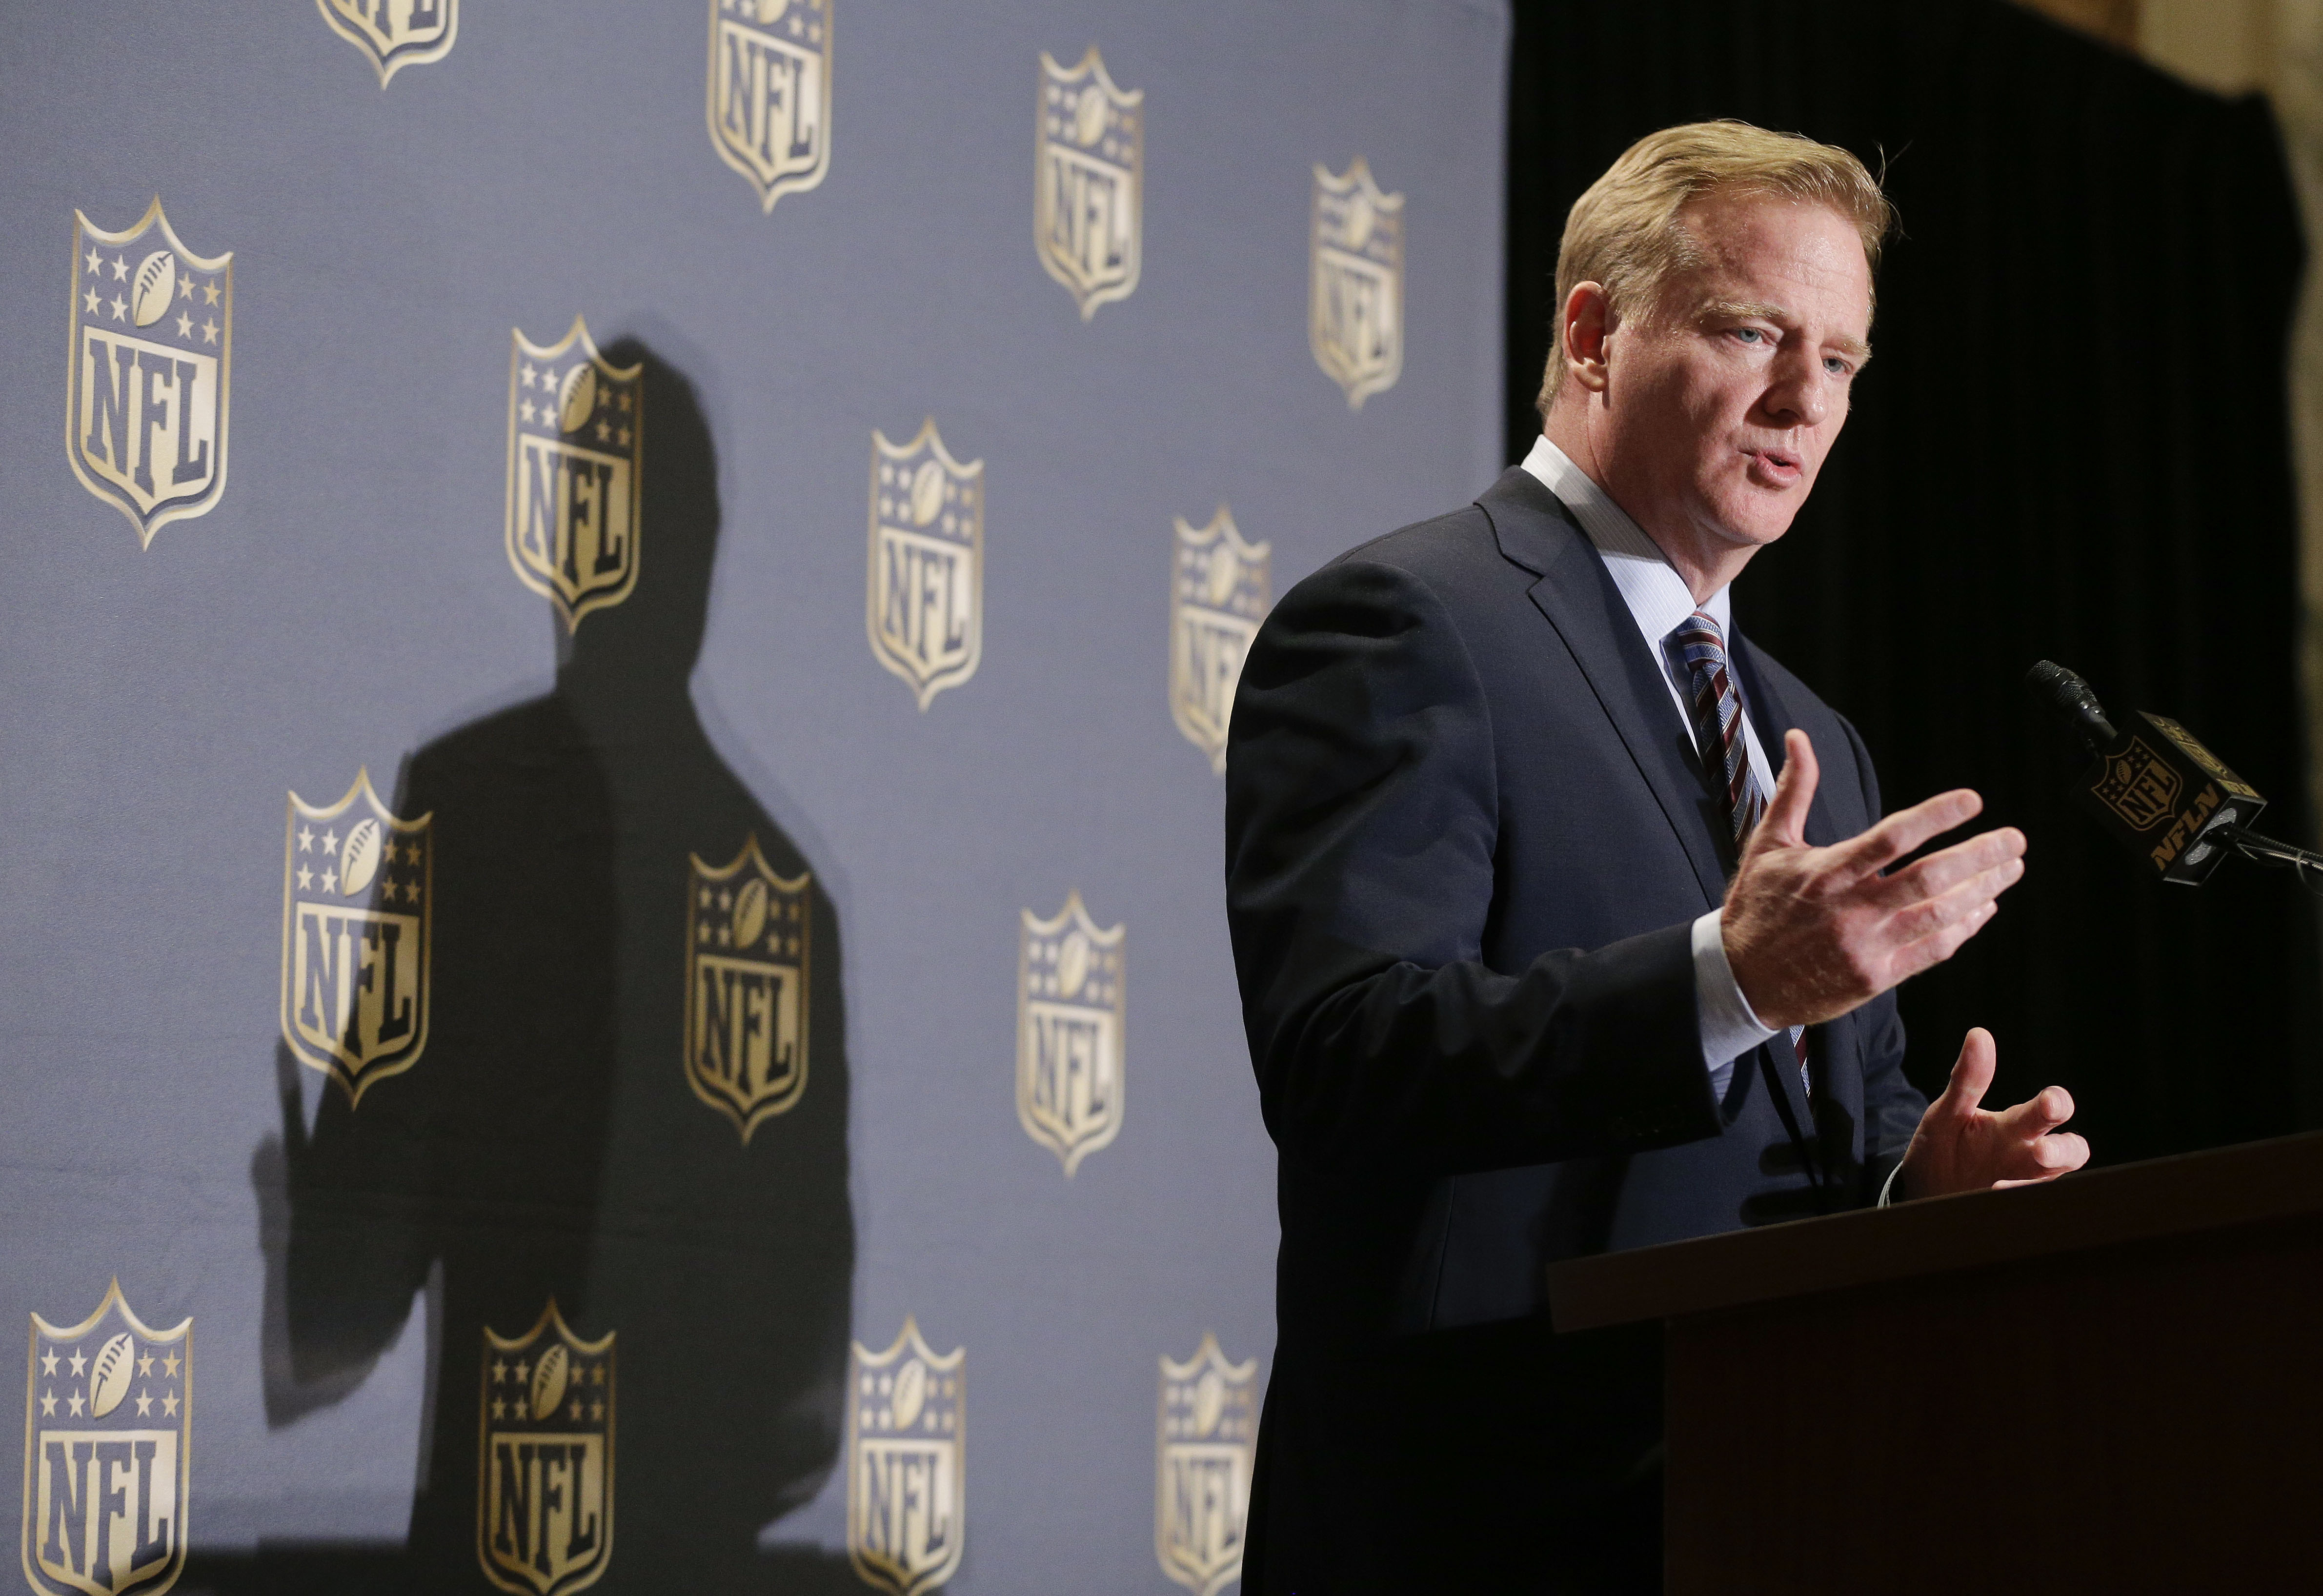 FILE - In this Wednesday, Oct. 7, 2015, file photo, NFL Commissioner Roger Goodell speaks during a news conference at the conclusion of the league's fall meetings, in New York. NFL owners are set for two days of meetings starting Tuesday, Jan. 12, 2016, i